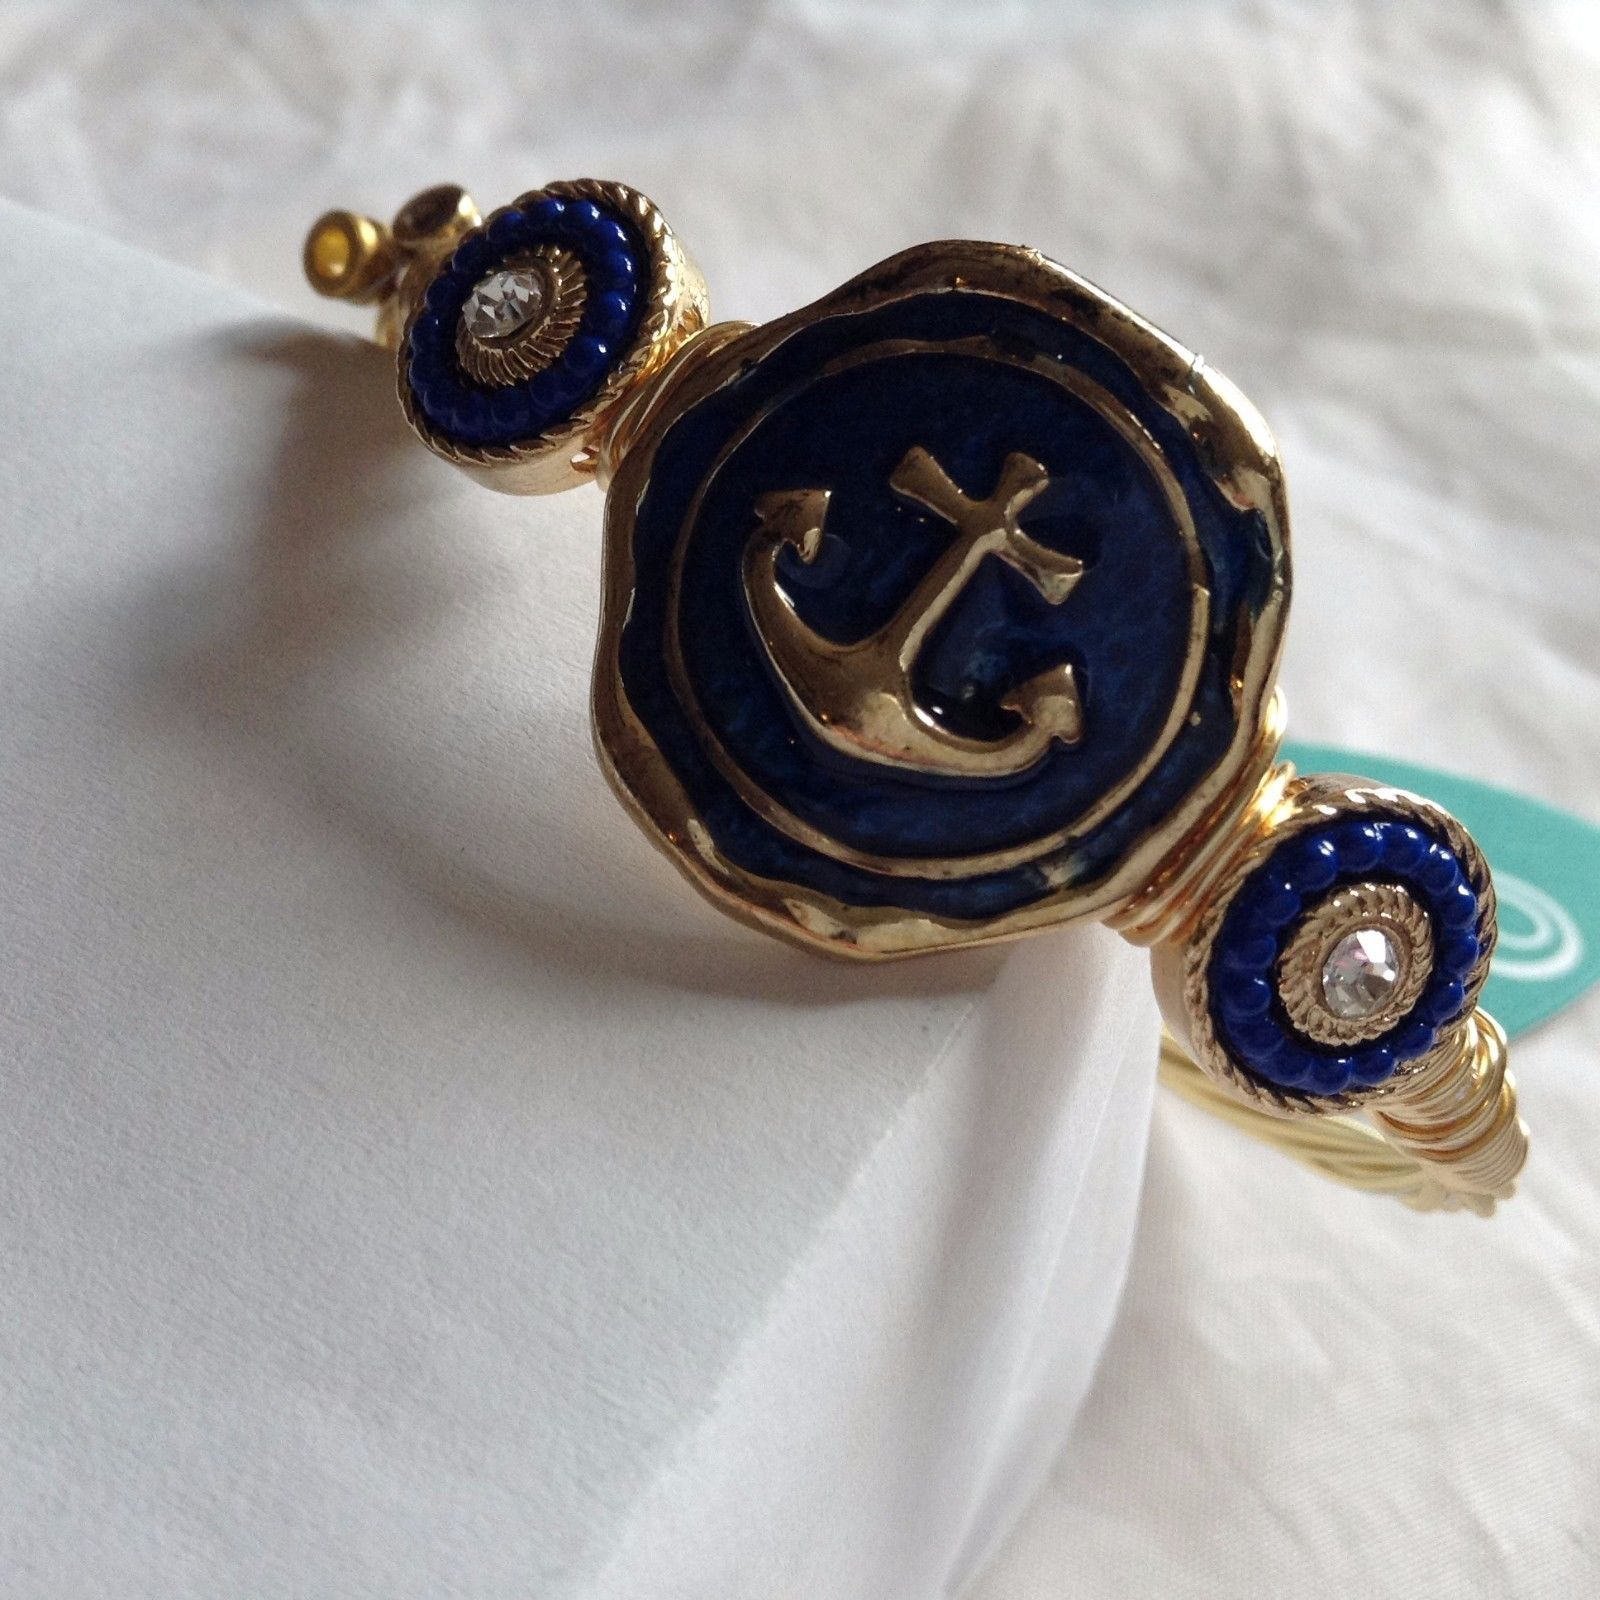 New String Theory made of guitar strings w nautical anchor marine blue bracelet